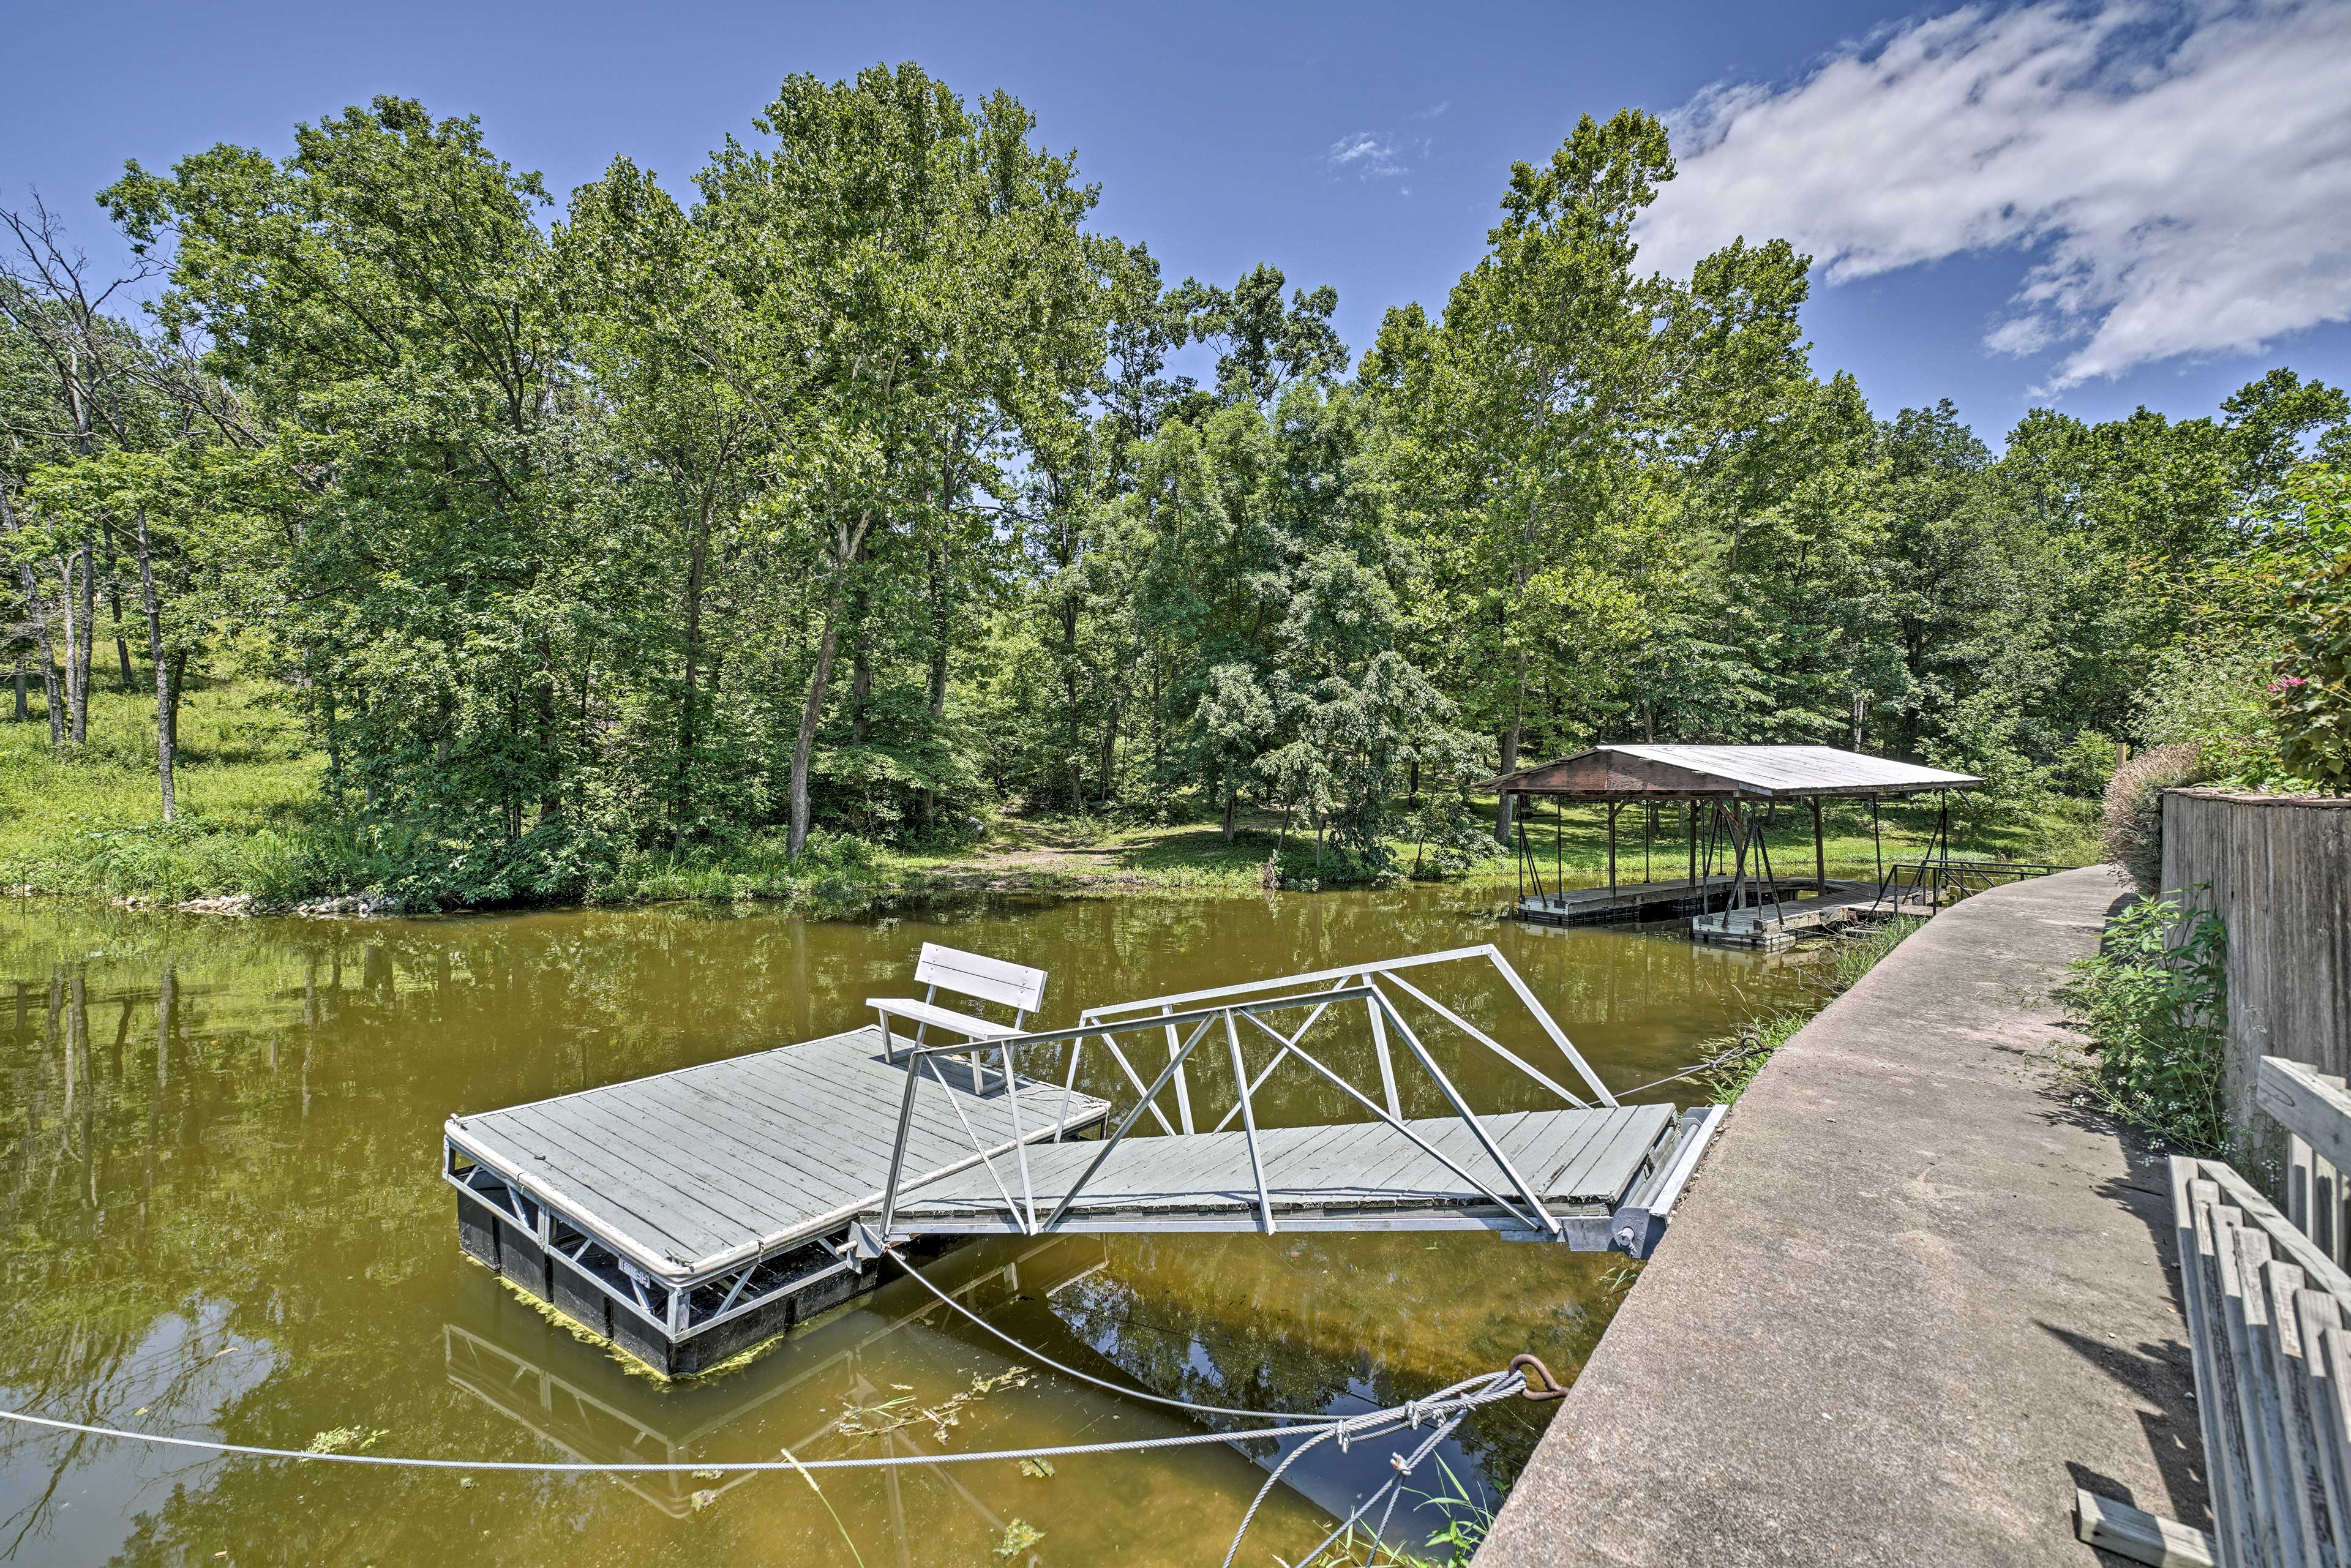 Your kids (& you!) will absolutely love jumping off into the cove from the dock!